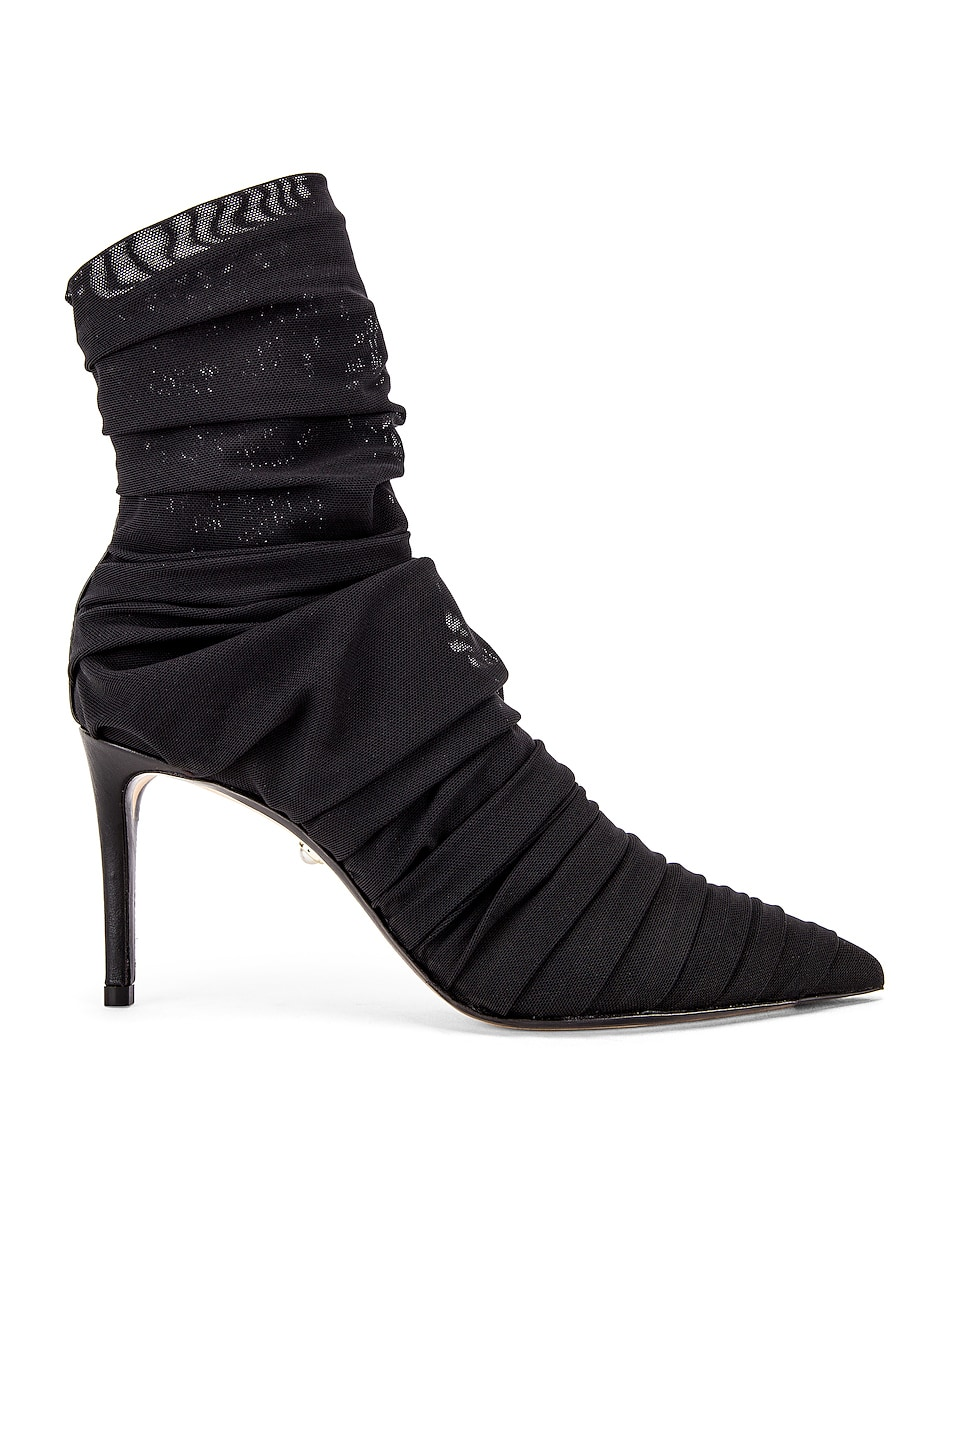 Image 1 of ALEVI Milano Alevi Gaia Bootie in Black Net